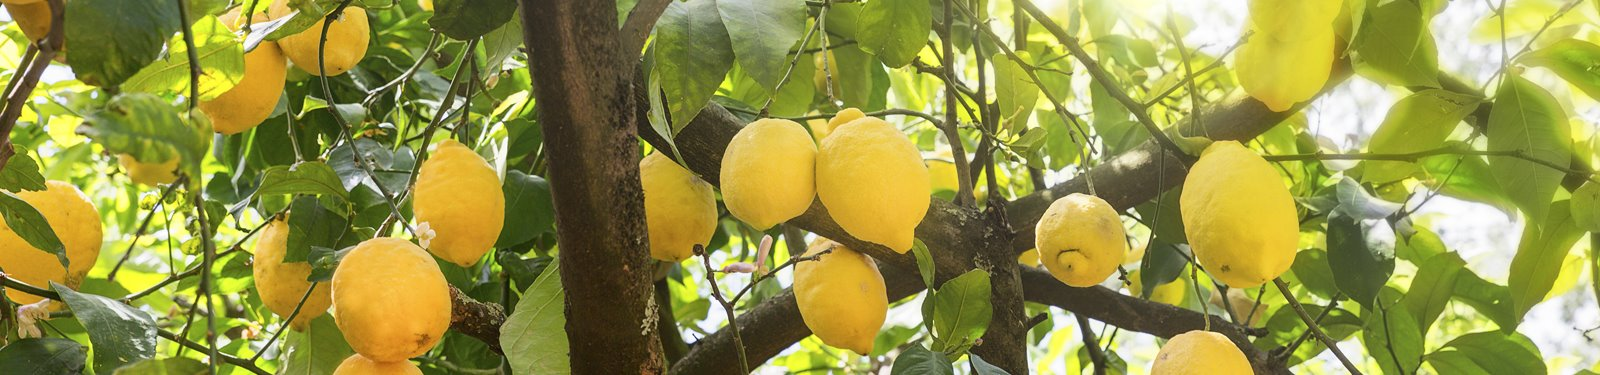 lemon-tree-grower-agf-foodware.jpg